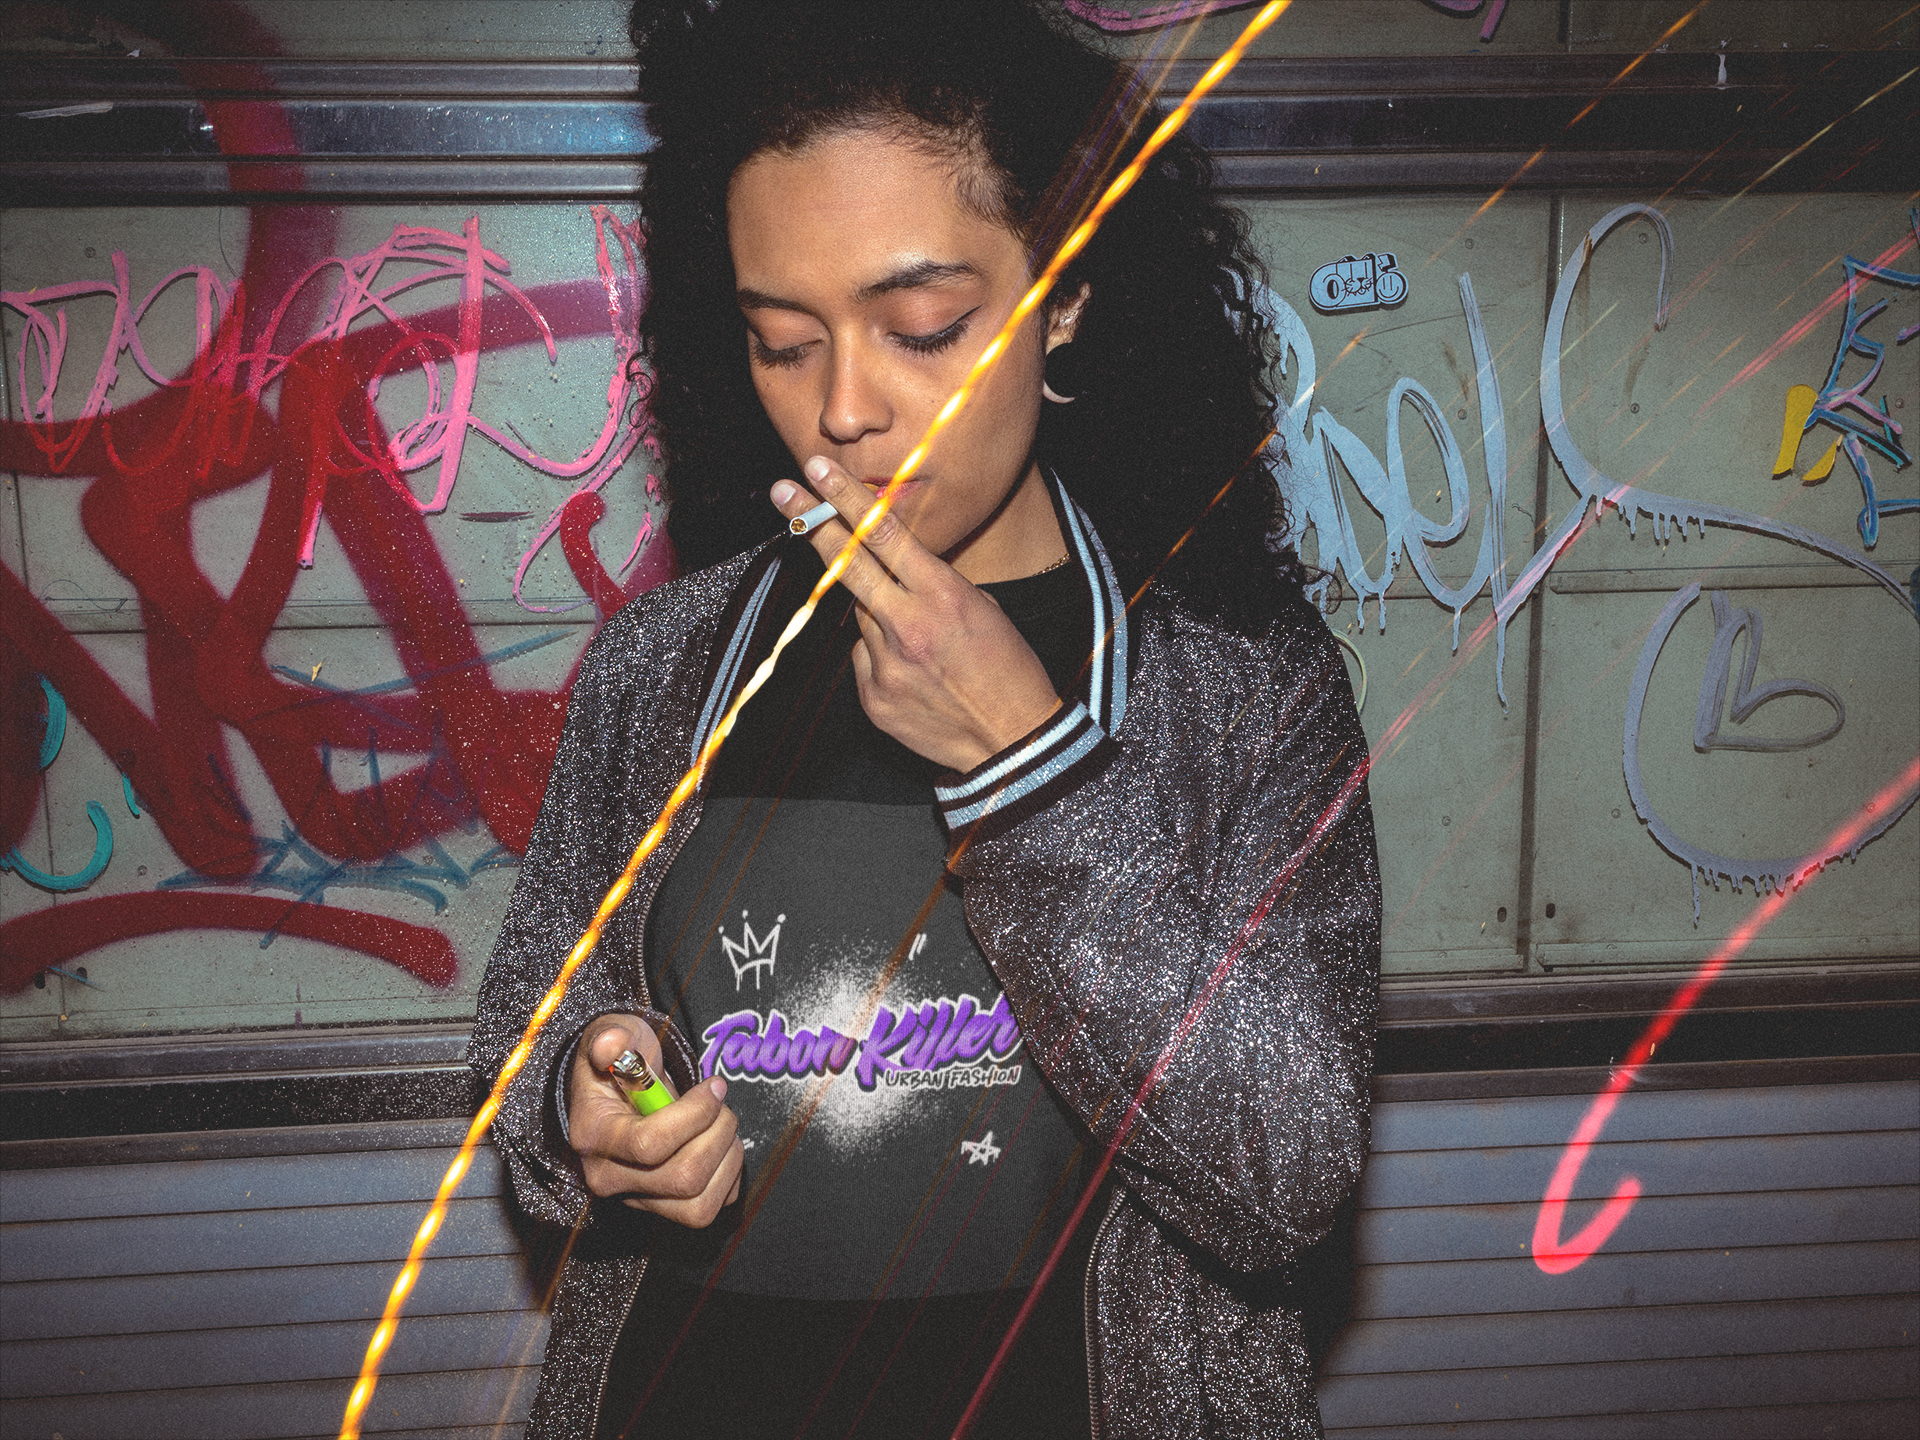 woman-lighting-a-cigarette-wearing-a-cre